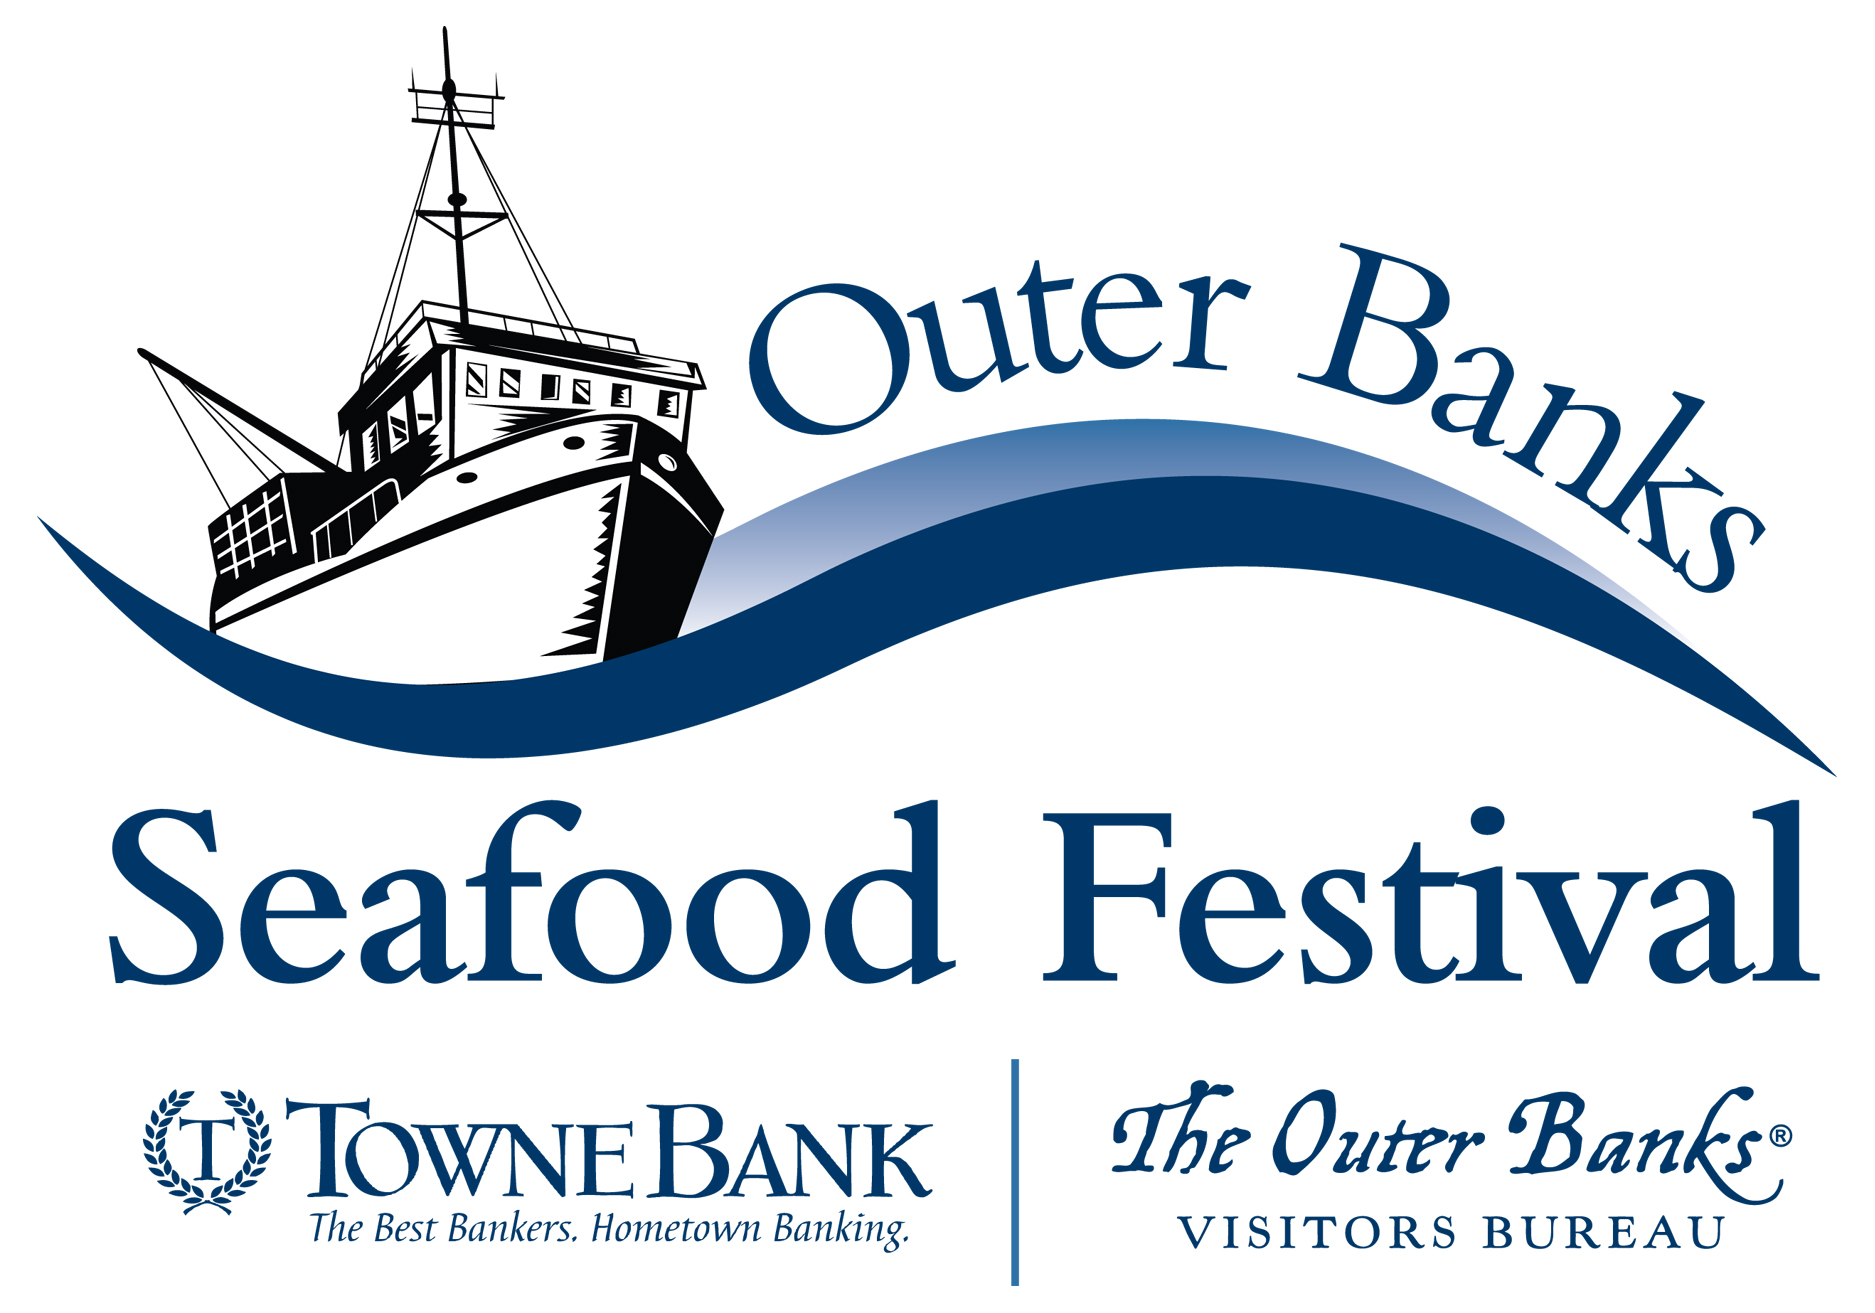 outer banks seafood festival flyer